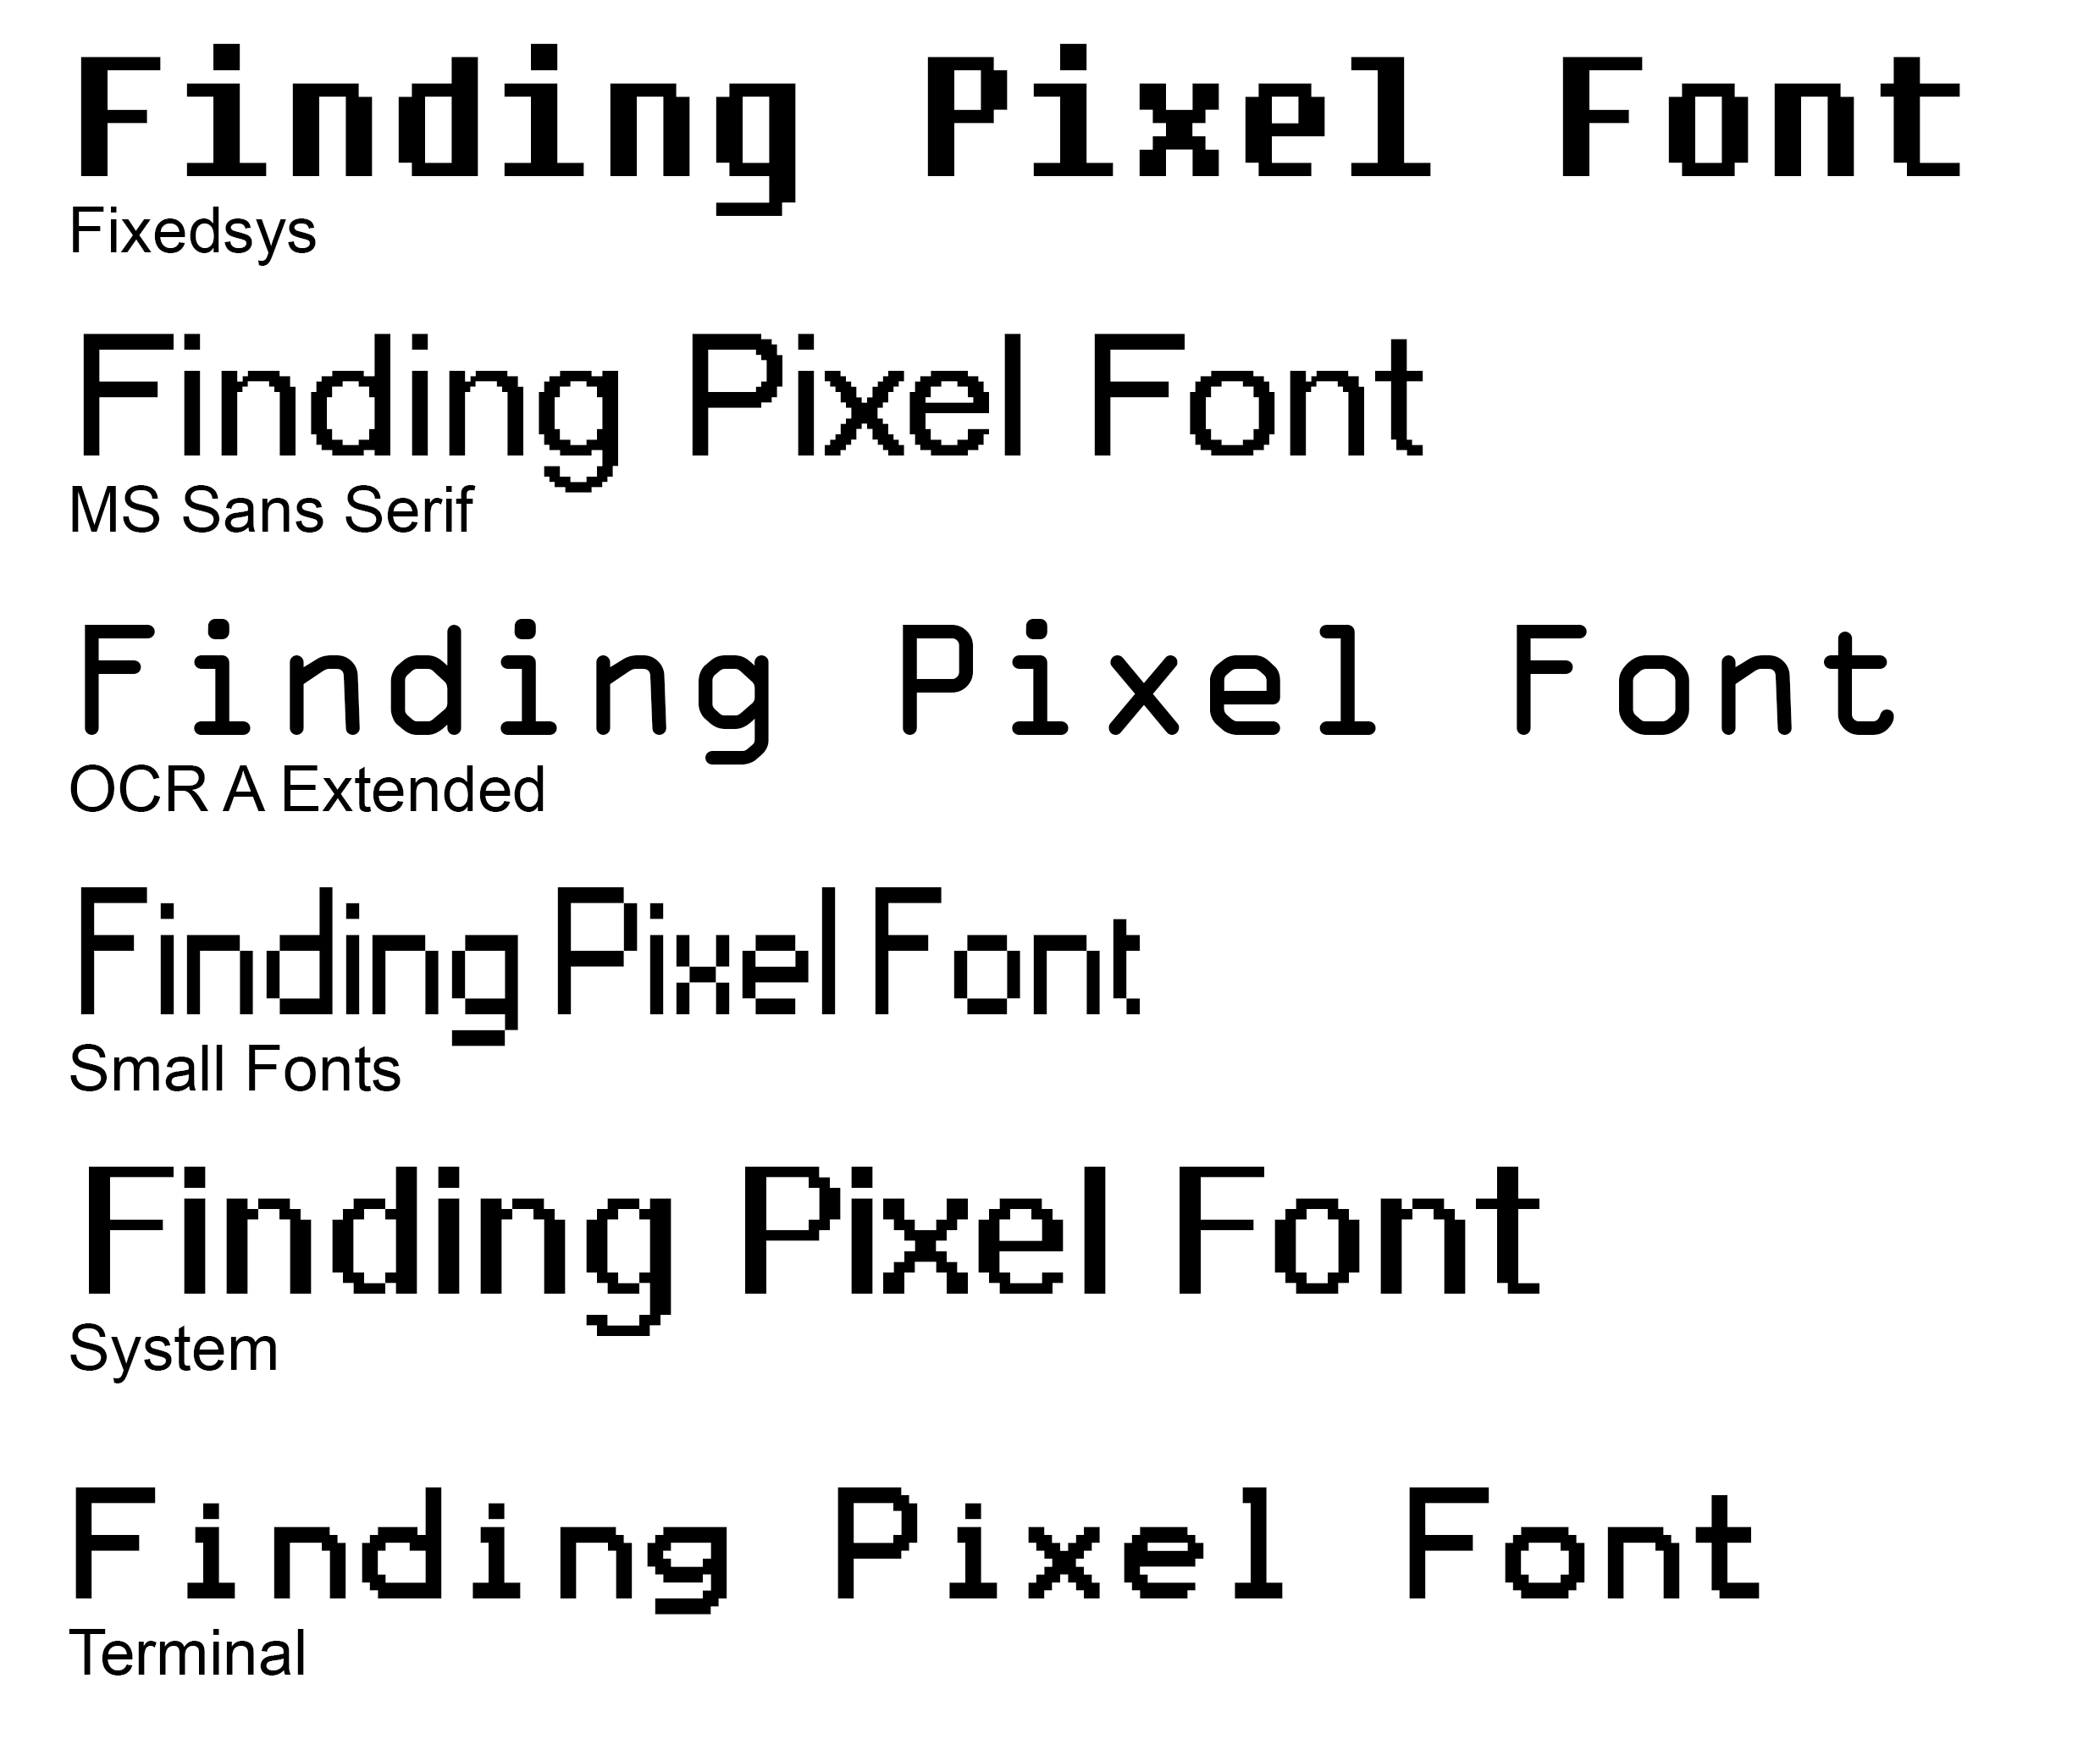 The List of Highlighted Fonts